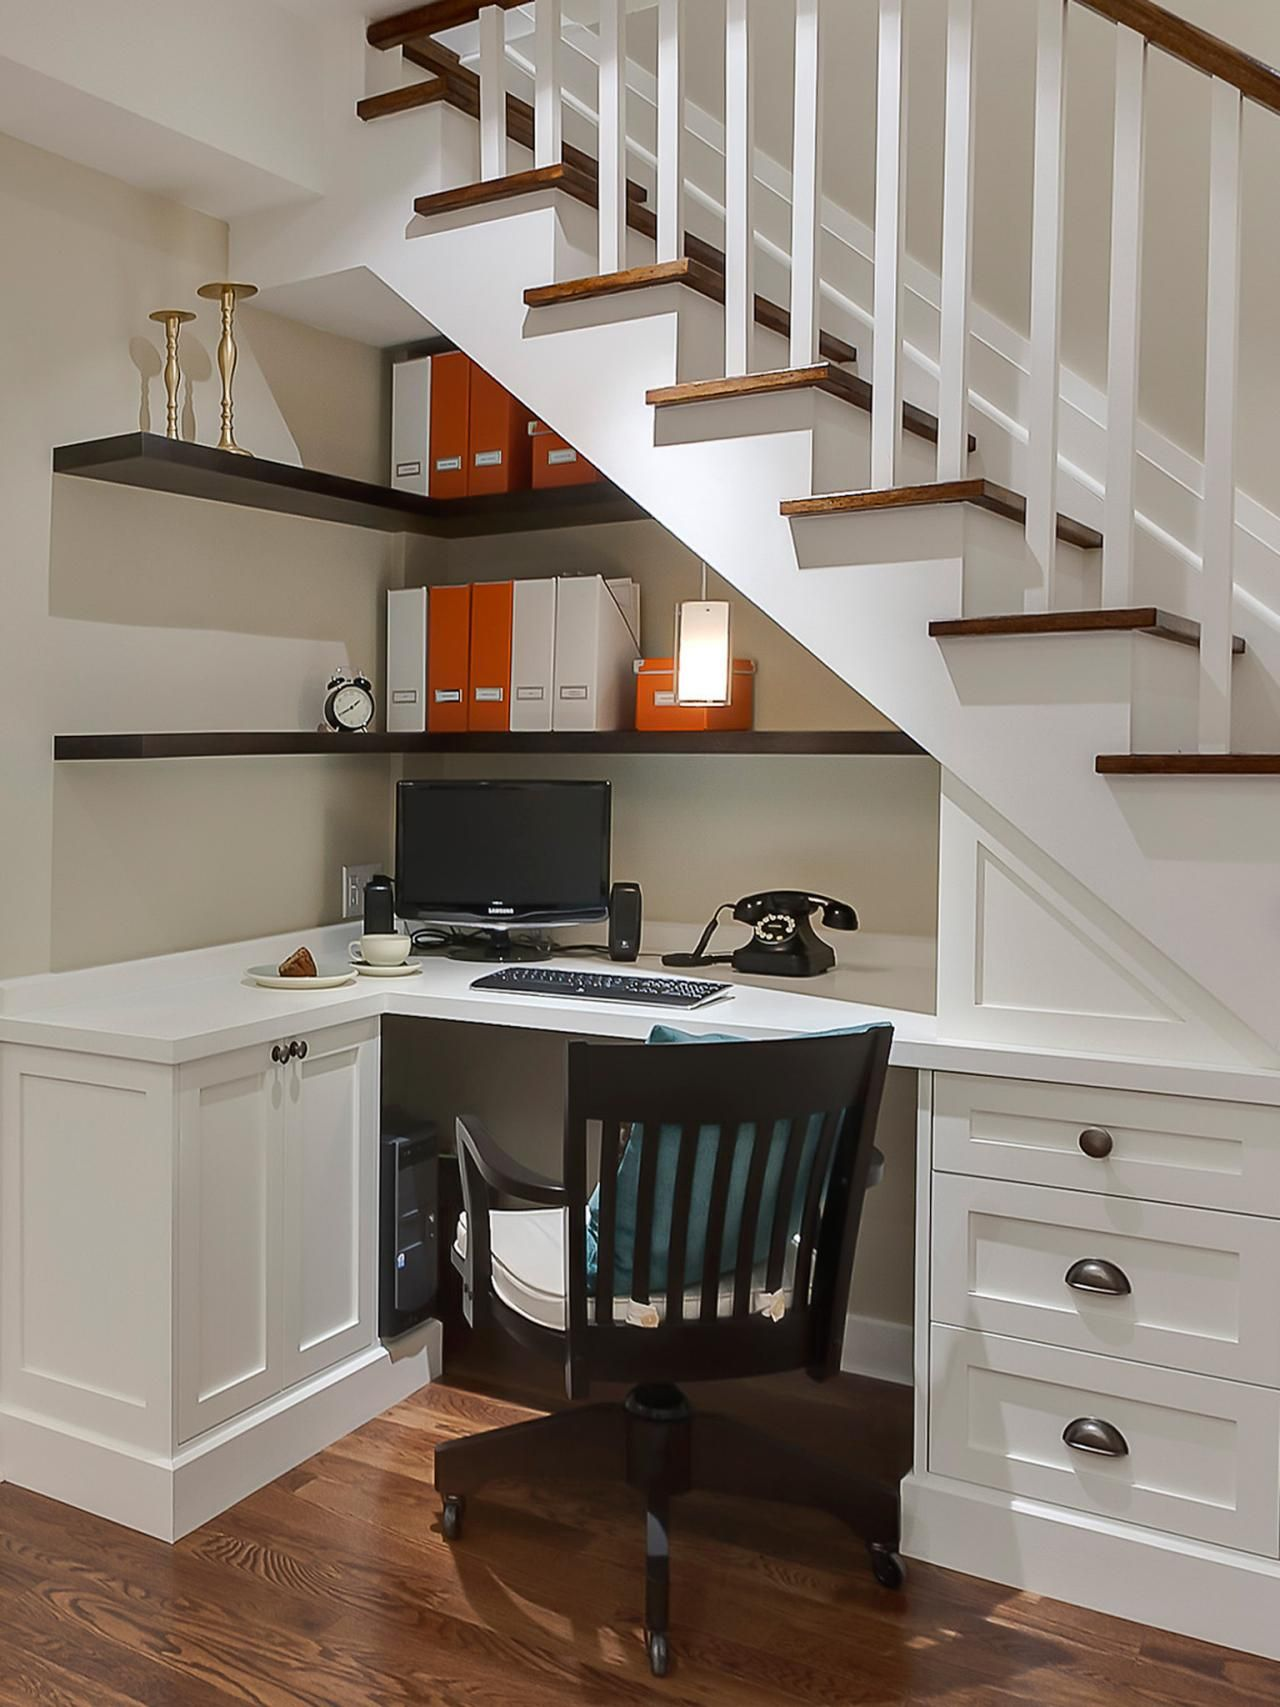 11 Pictures Of Organized Home Offices. Basement Home OfficeSmall Basement  RemodelOrganized ...